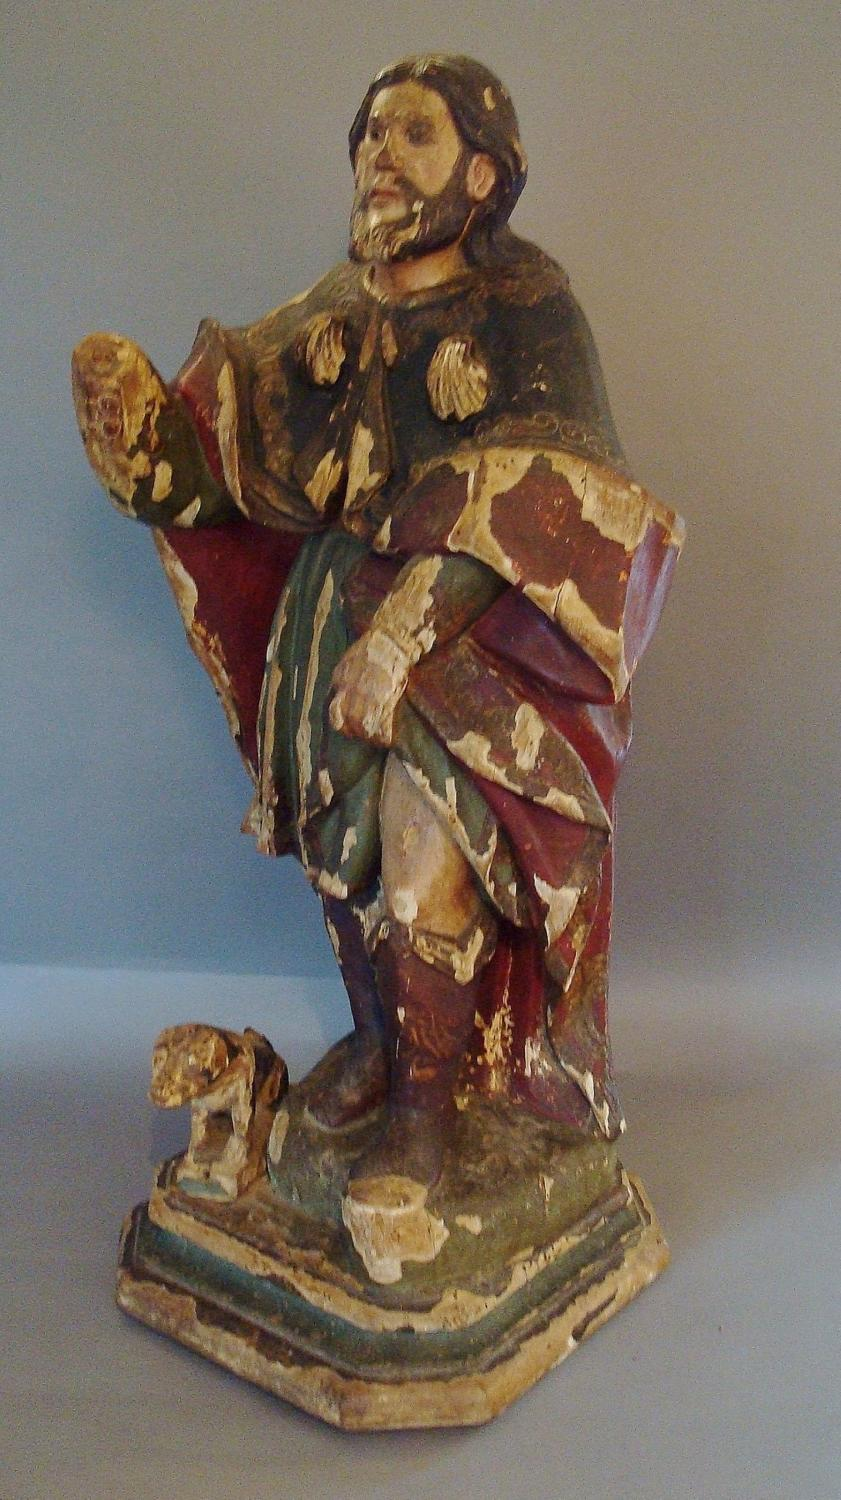 C18th statue of Saint Roch